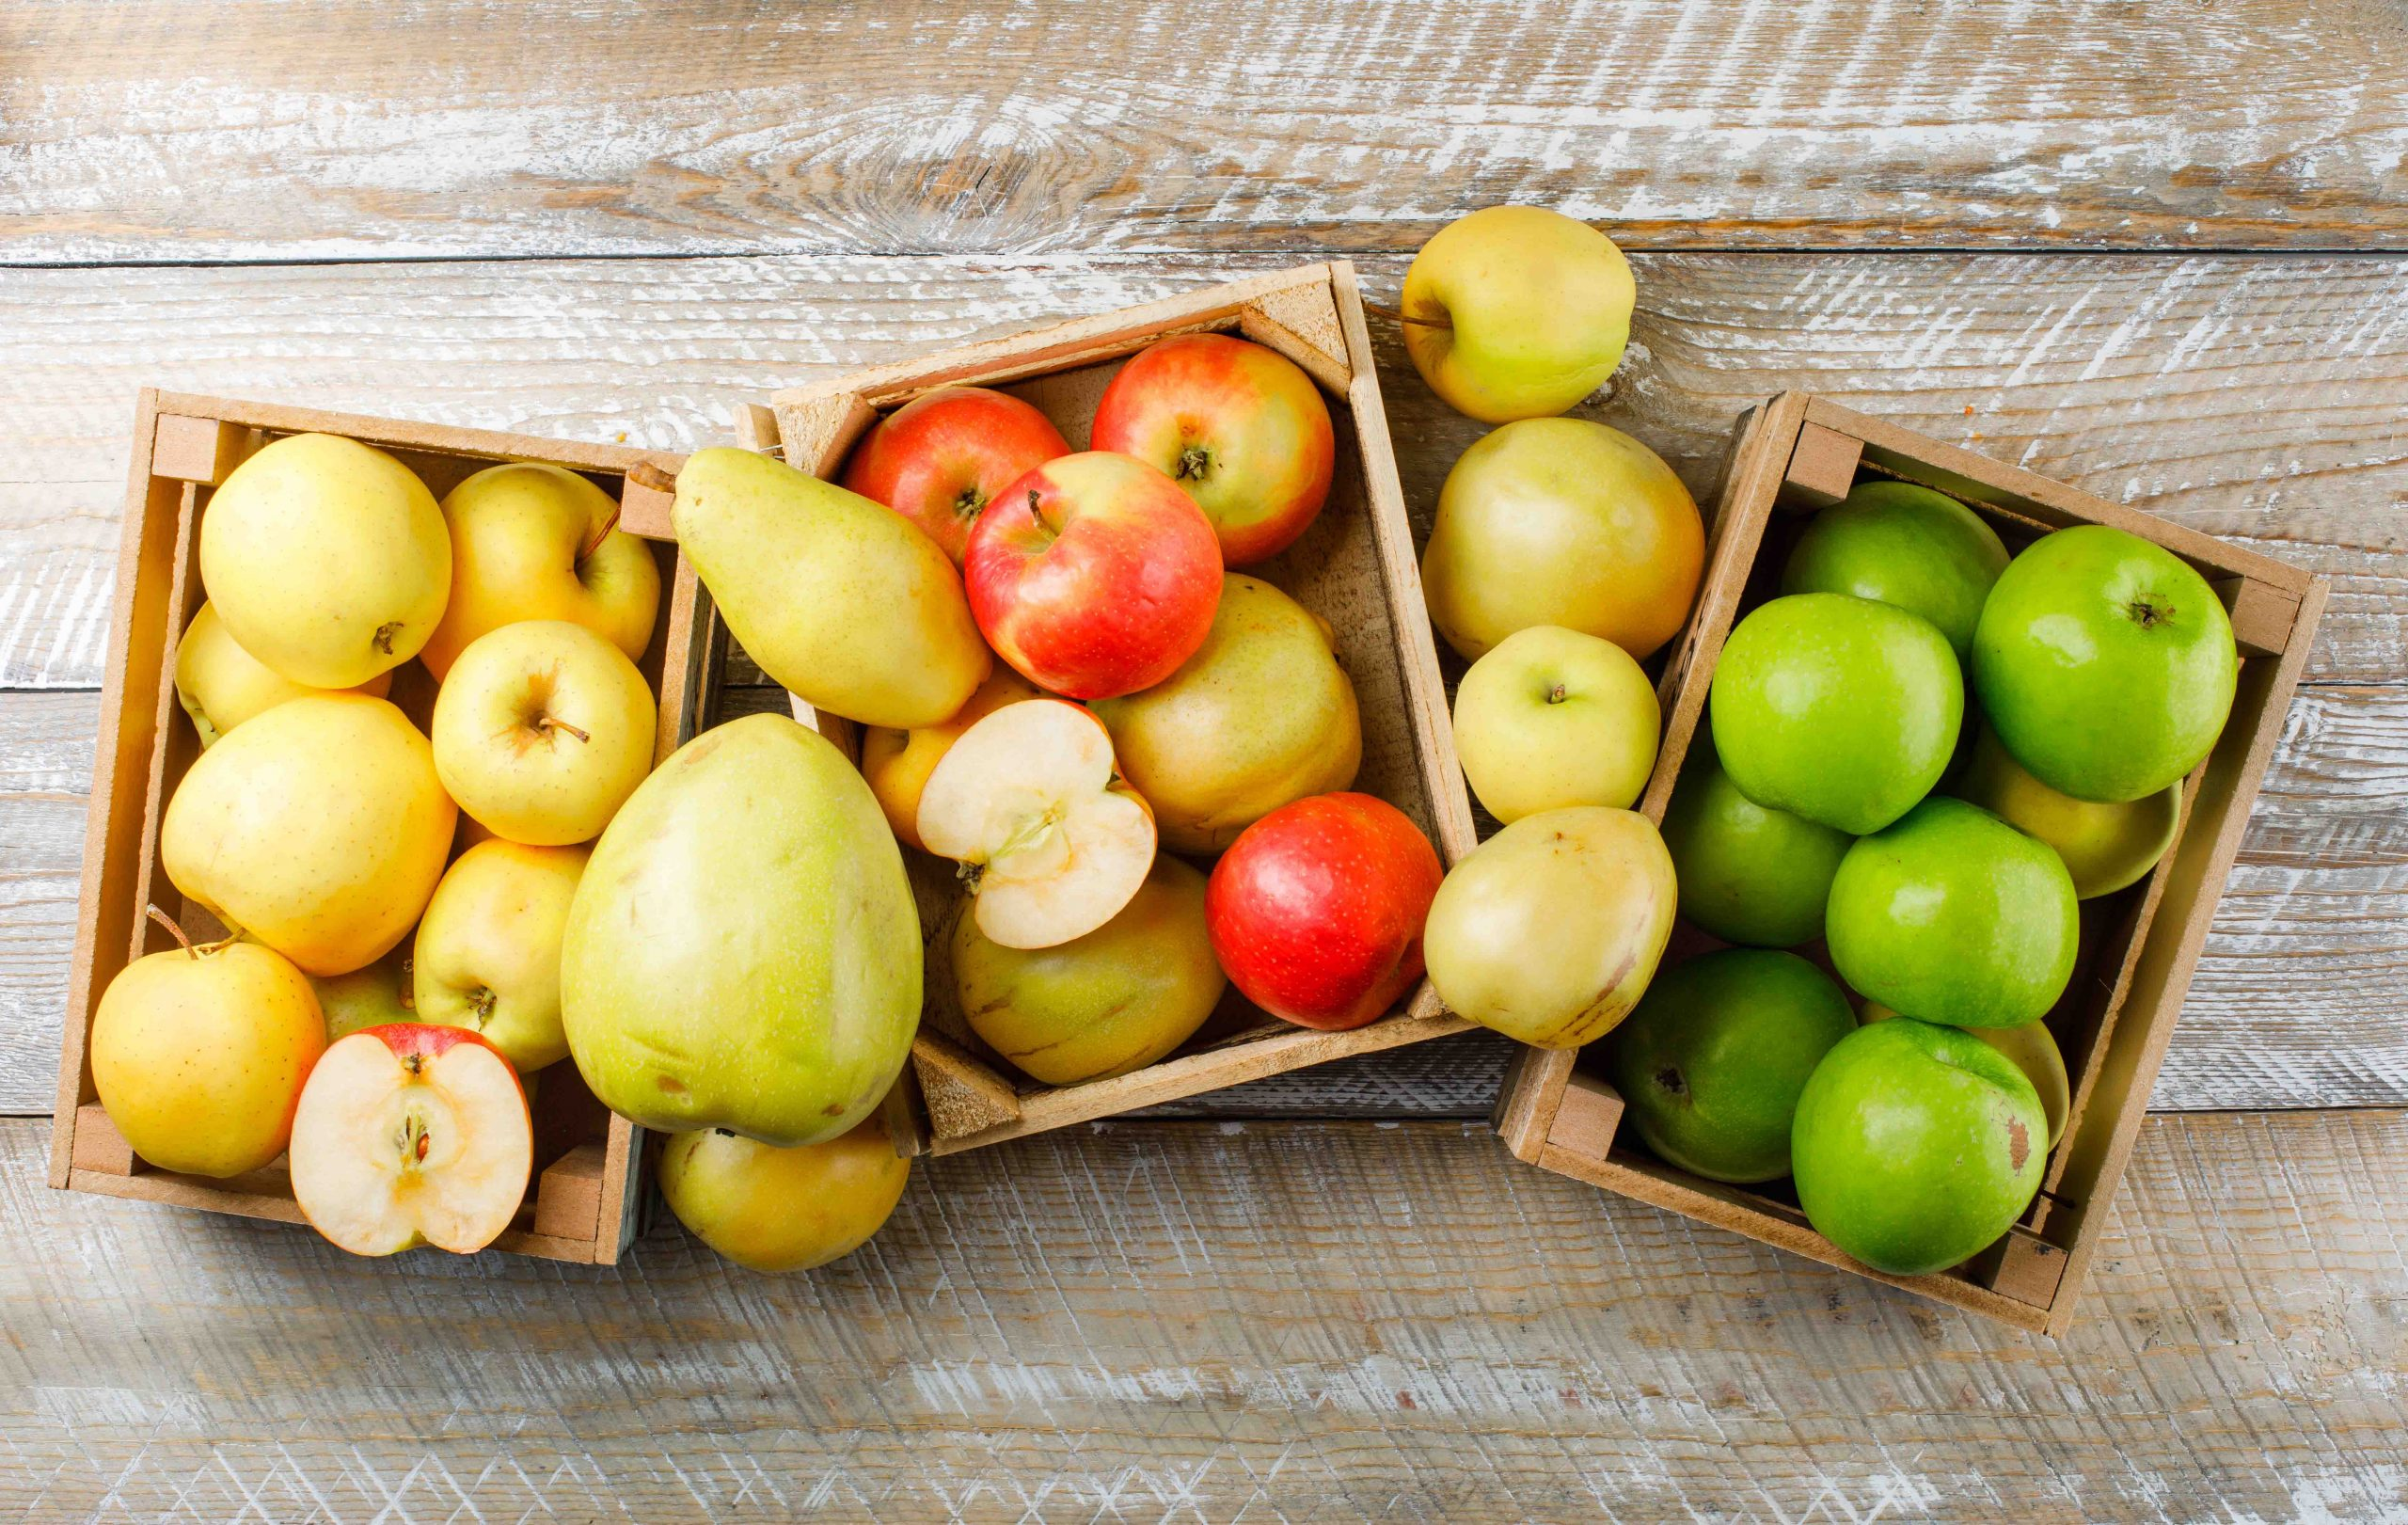 Apples variety with pears in wooden boxes on wooden background, top view.